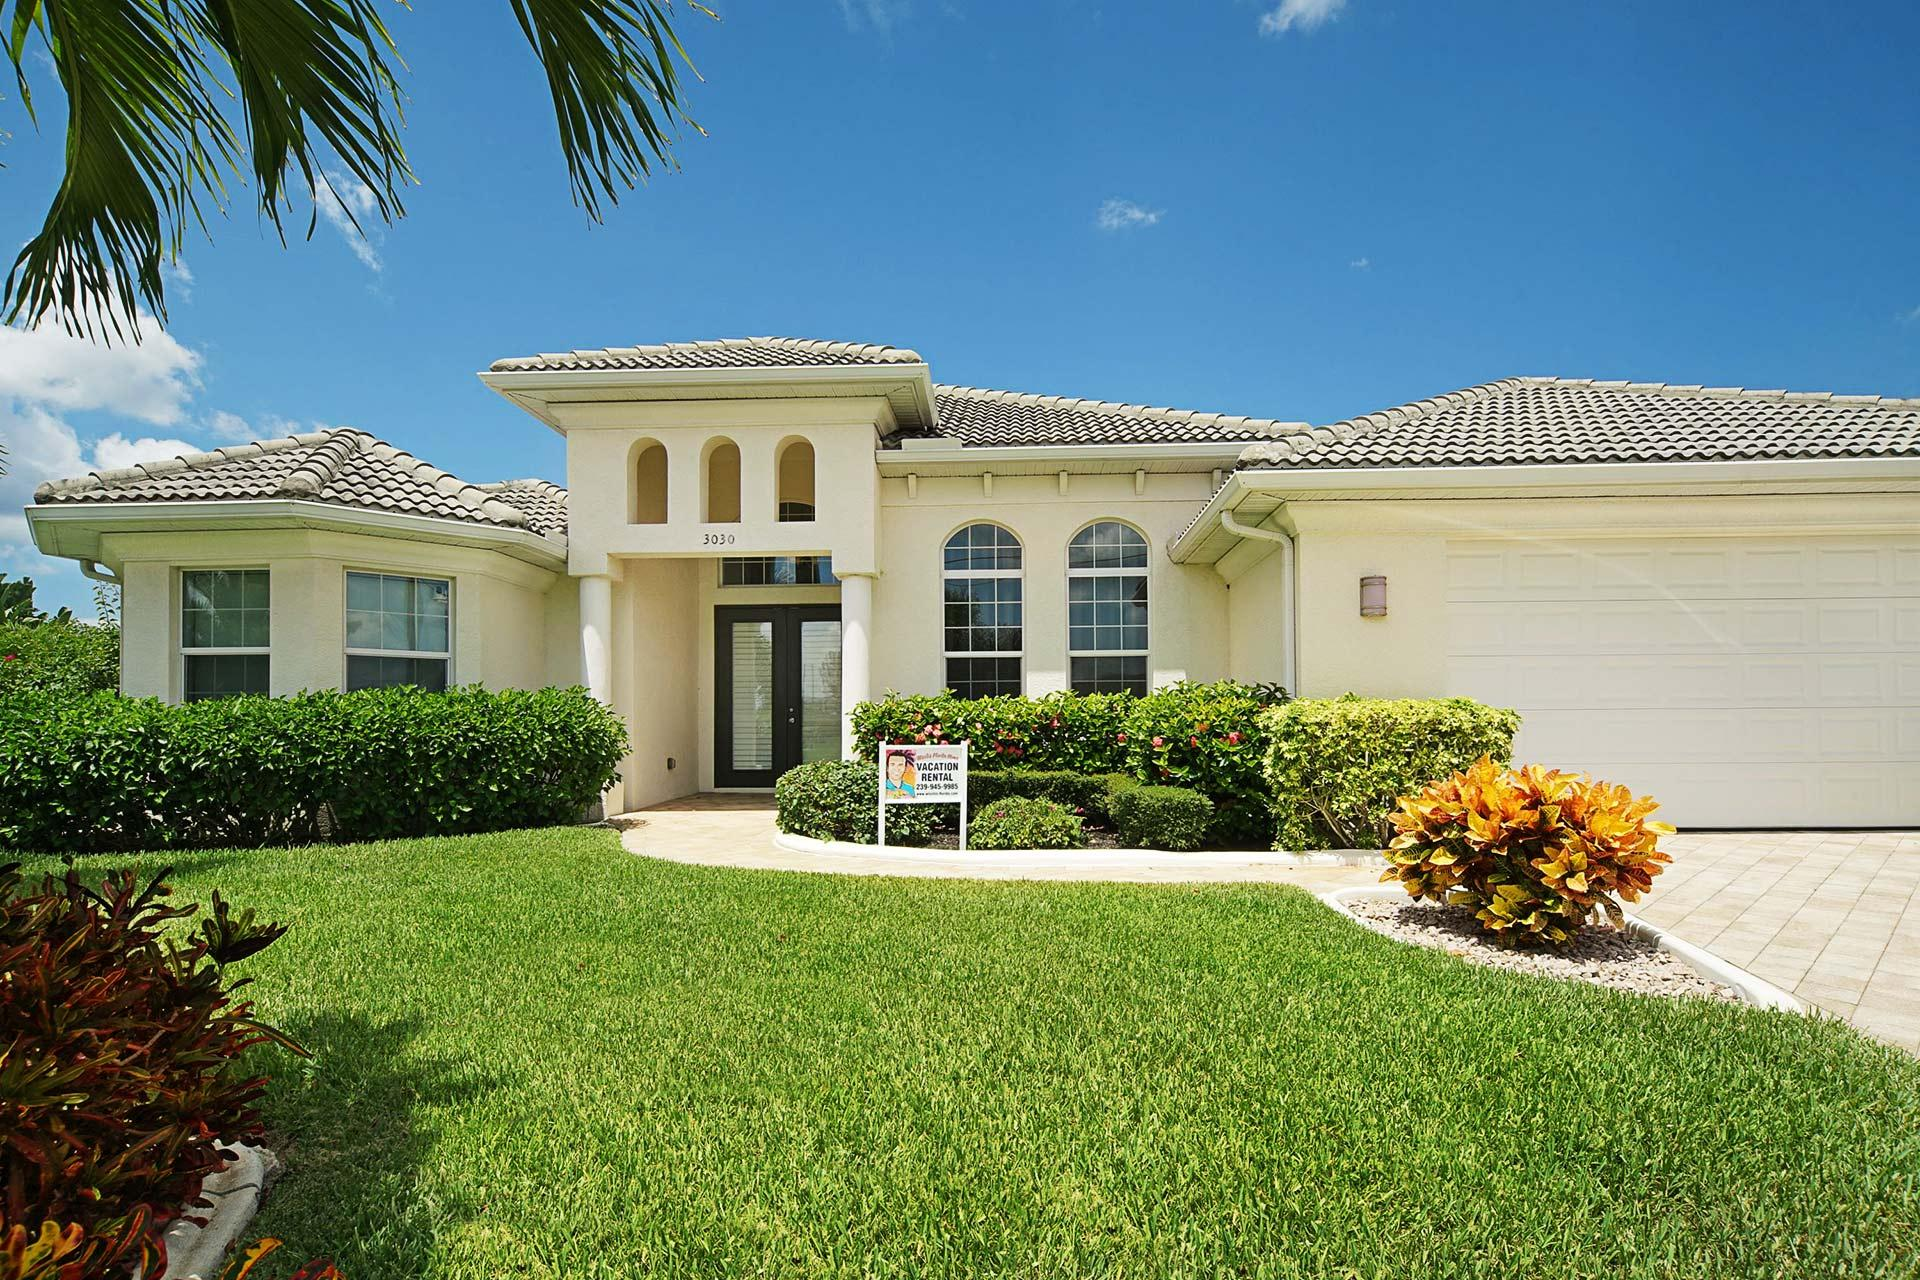 Wischis Florida Home - Coral Palms